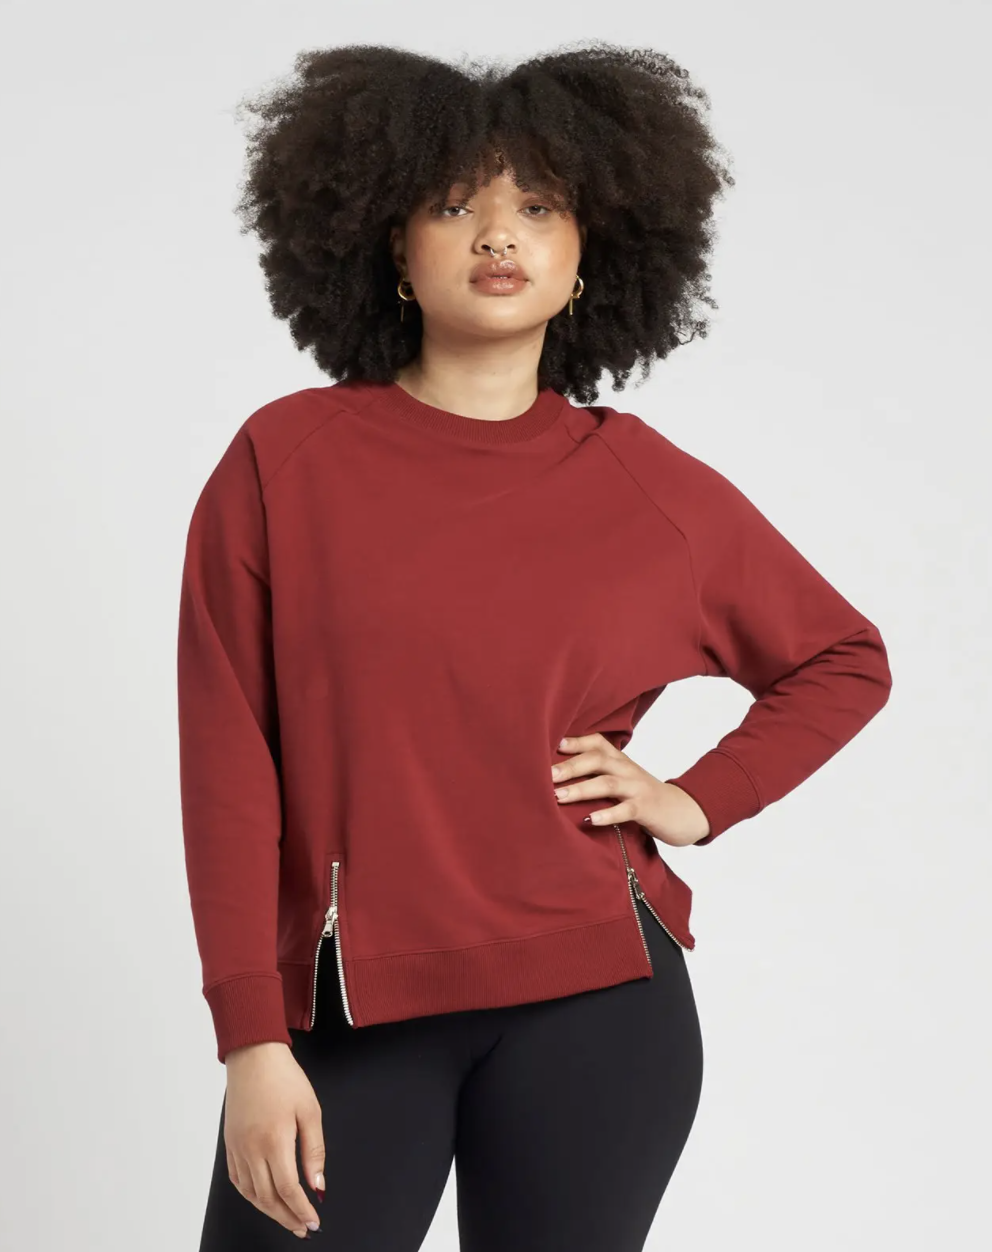 model wearing red pullover with black leggings